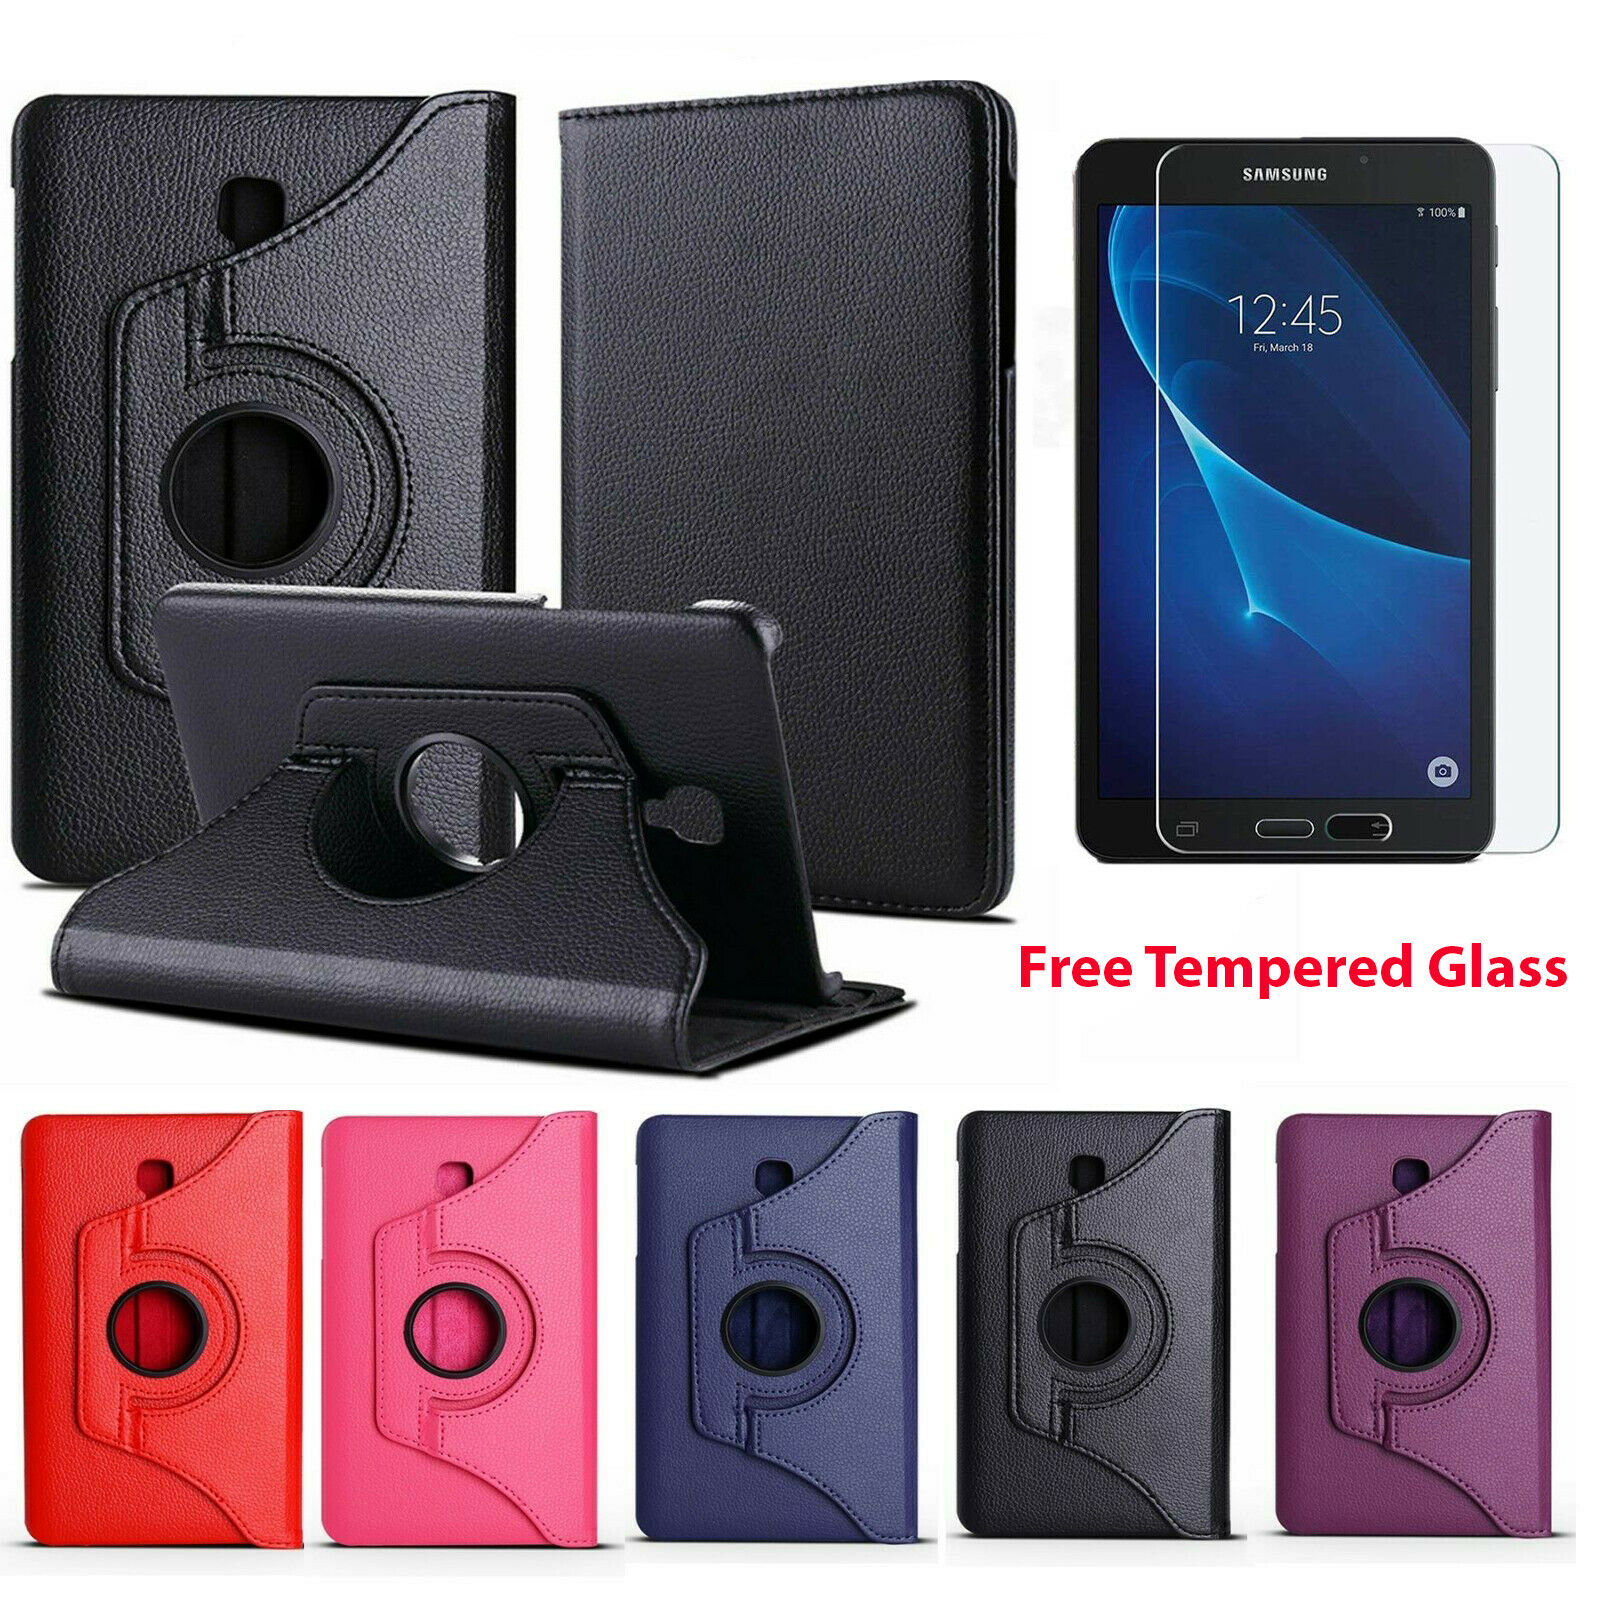 Leather Case Cover Samsung Galaxy Tab A 7 inch Tablet (SM-T280 / SM-T285)+ Glass Cases, Covers, Keyboard Folios